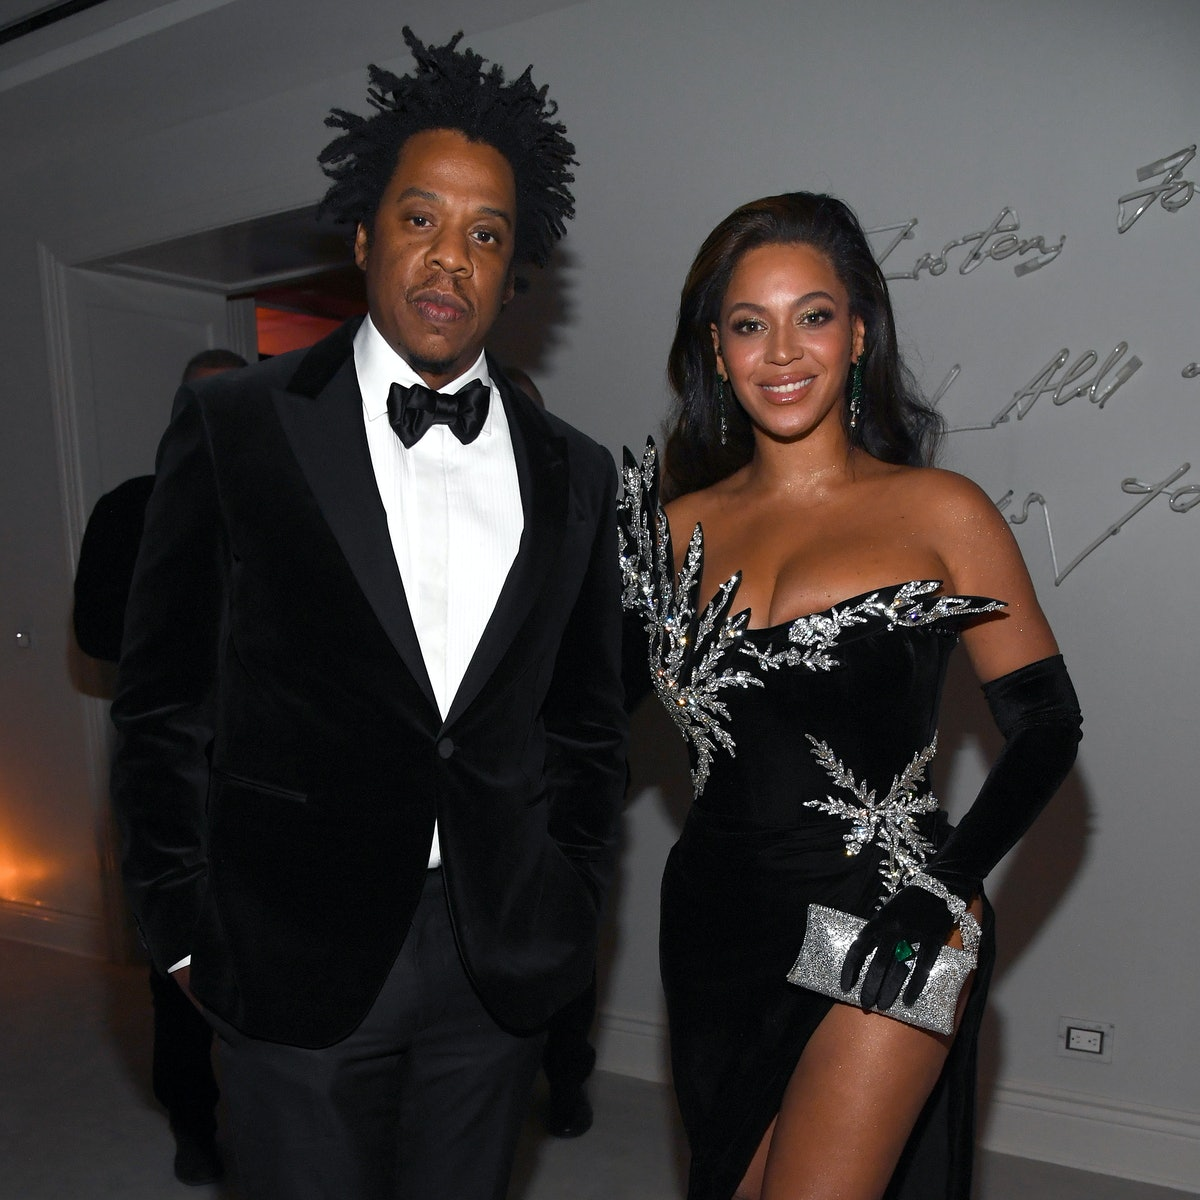 LOS ANGELES, CALIFORNIA - DECEMBER 14: (L-R) Jay-Z and Beyoncé Knowles-Carter attend Sean Combs 50th Birthday Bash presented by Ciroc Vodka on December 14, 2019 in Los Angeles, California. (Photo by Kevin Mazur/Getty Images for Sean Combs)